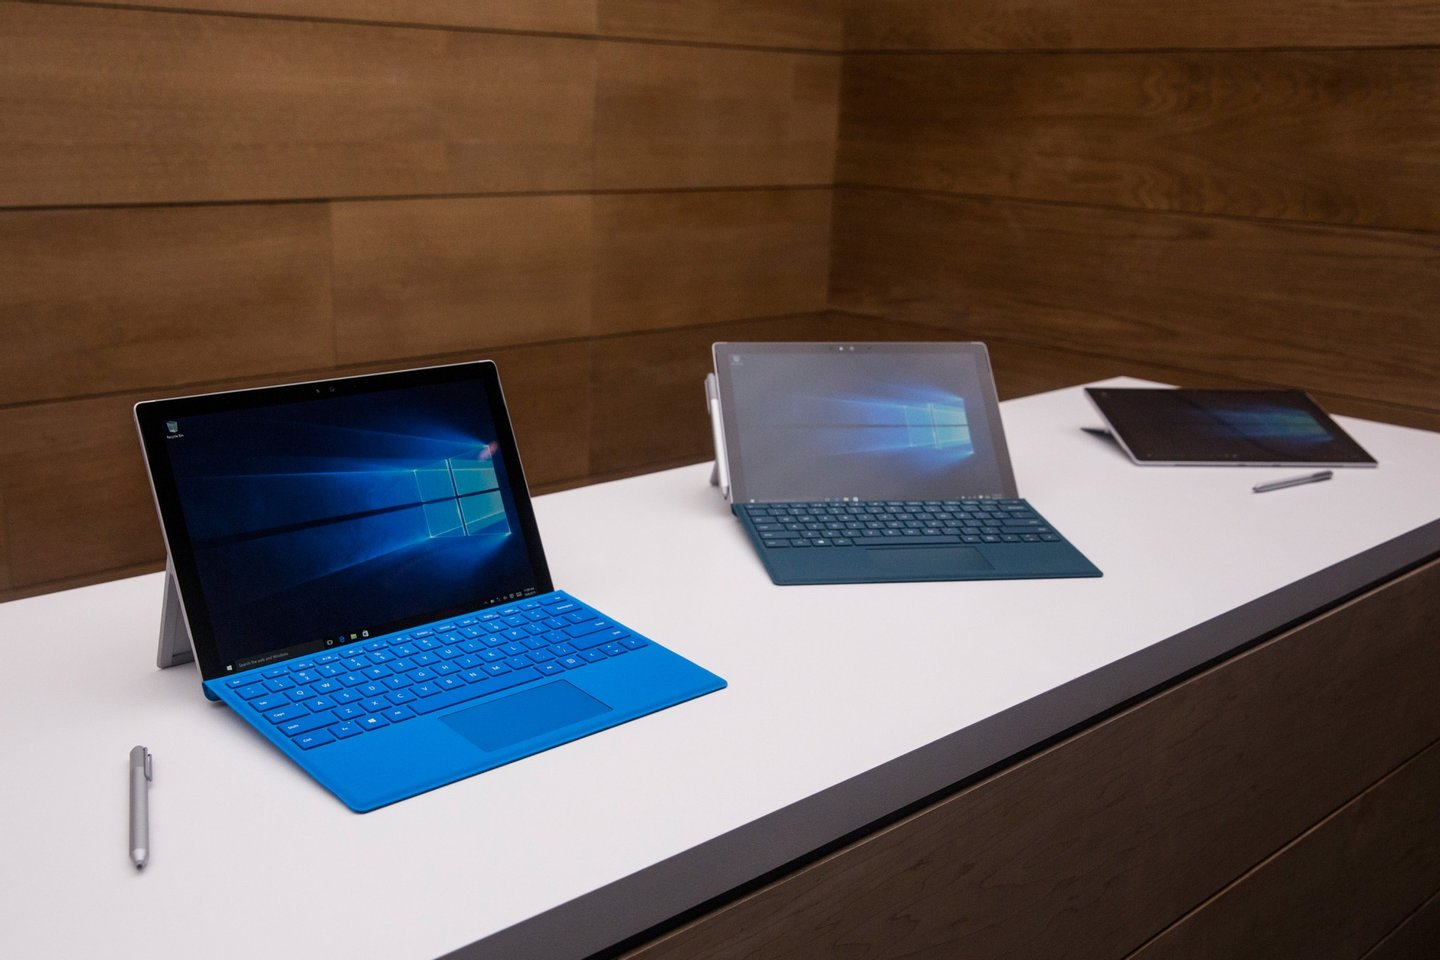 NEW YORK, NY - OCTOBER 06: New Microsoft Surface Pro 4s sit on display at a media event for new Microsoft products on October 6, 2015 in New York City. Microsoft also unveiled a virtual reality gaming head set titled the HoloLens, a laptop titled the Surface Book and a phone titled the Lumia 950. (Photo by Andrew Burton/Getty Images)